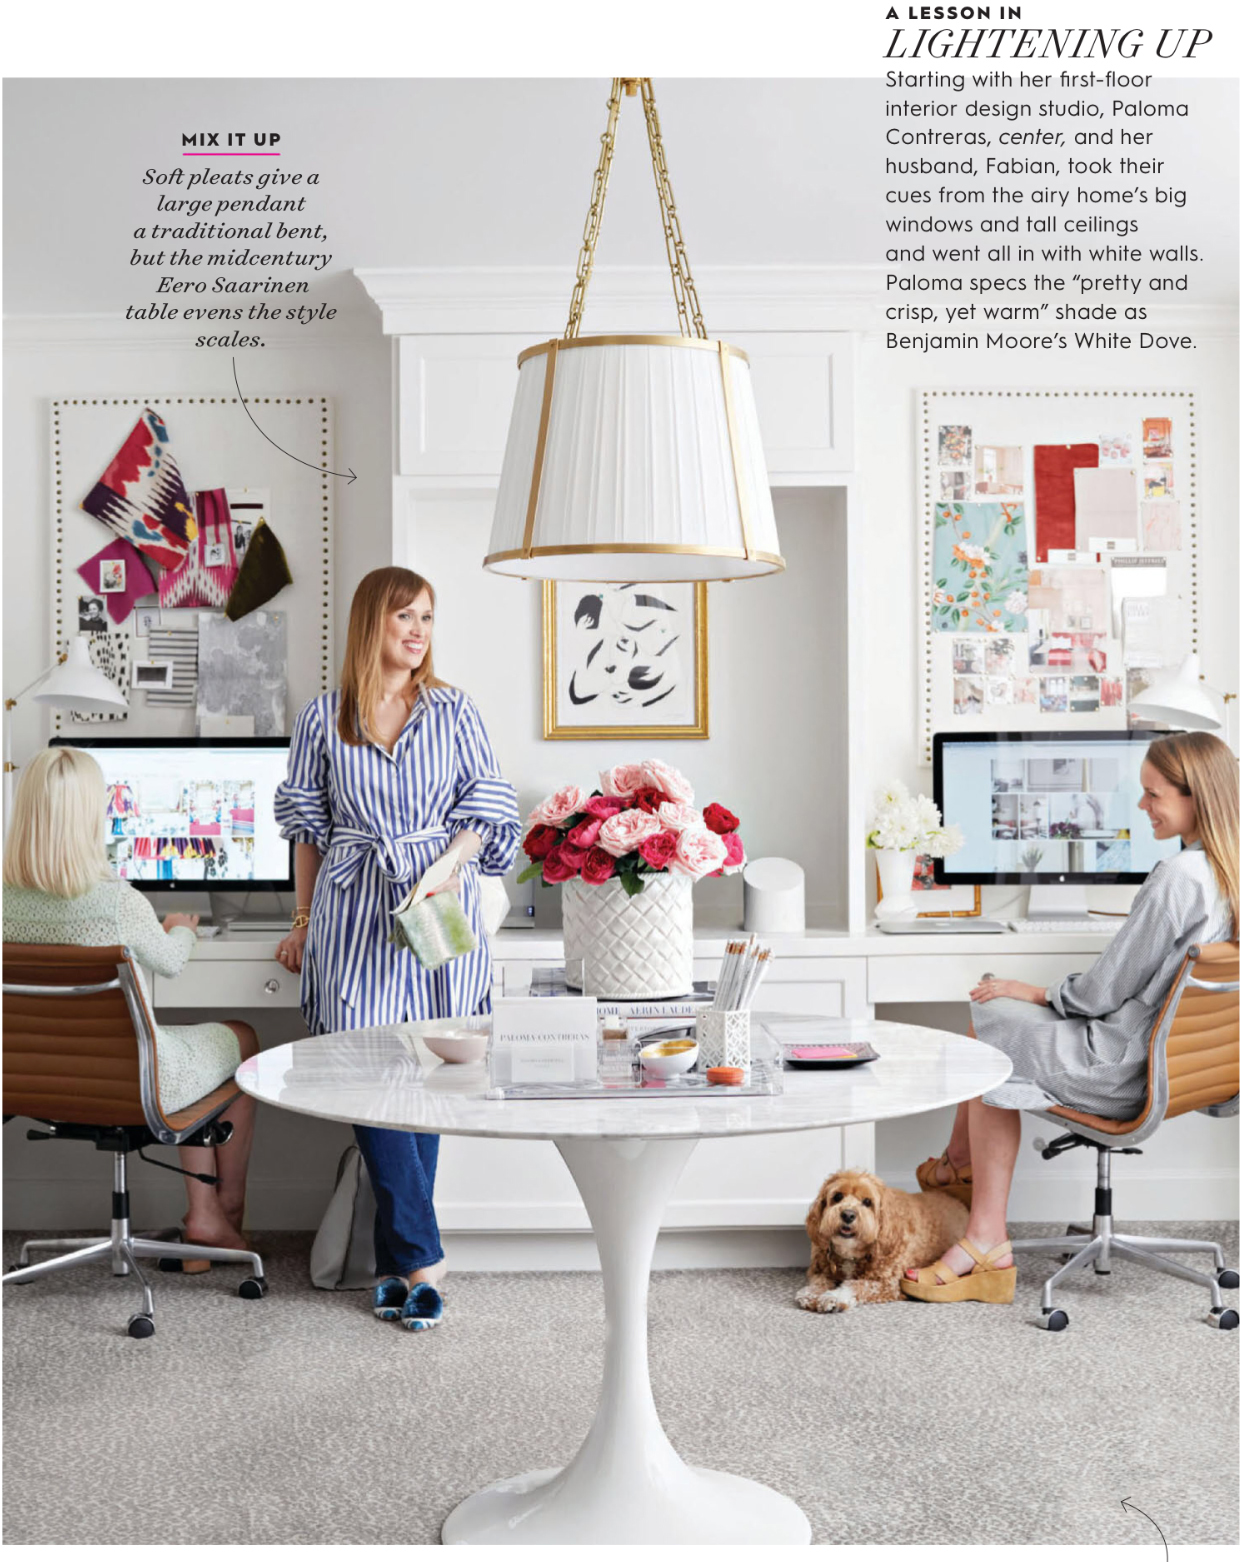 Photos by  David Tsay  for  Better Homes & Gardens .